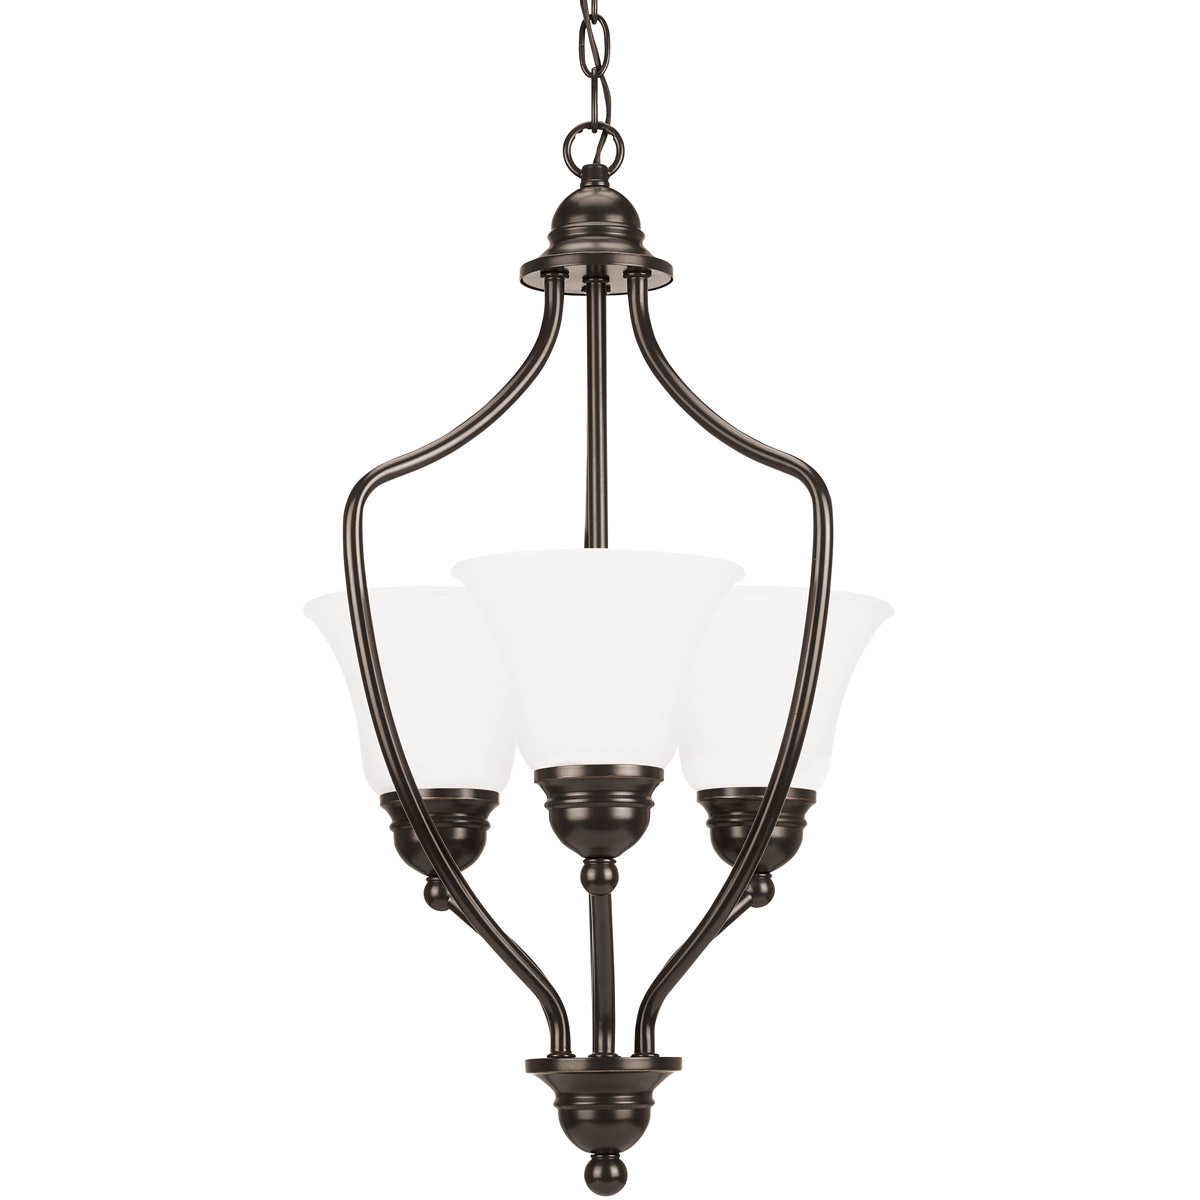 Sea Gull Lighting Signature 3 Light Foyer Pendant in Heirloom Bronze 51410-782 photo